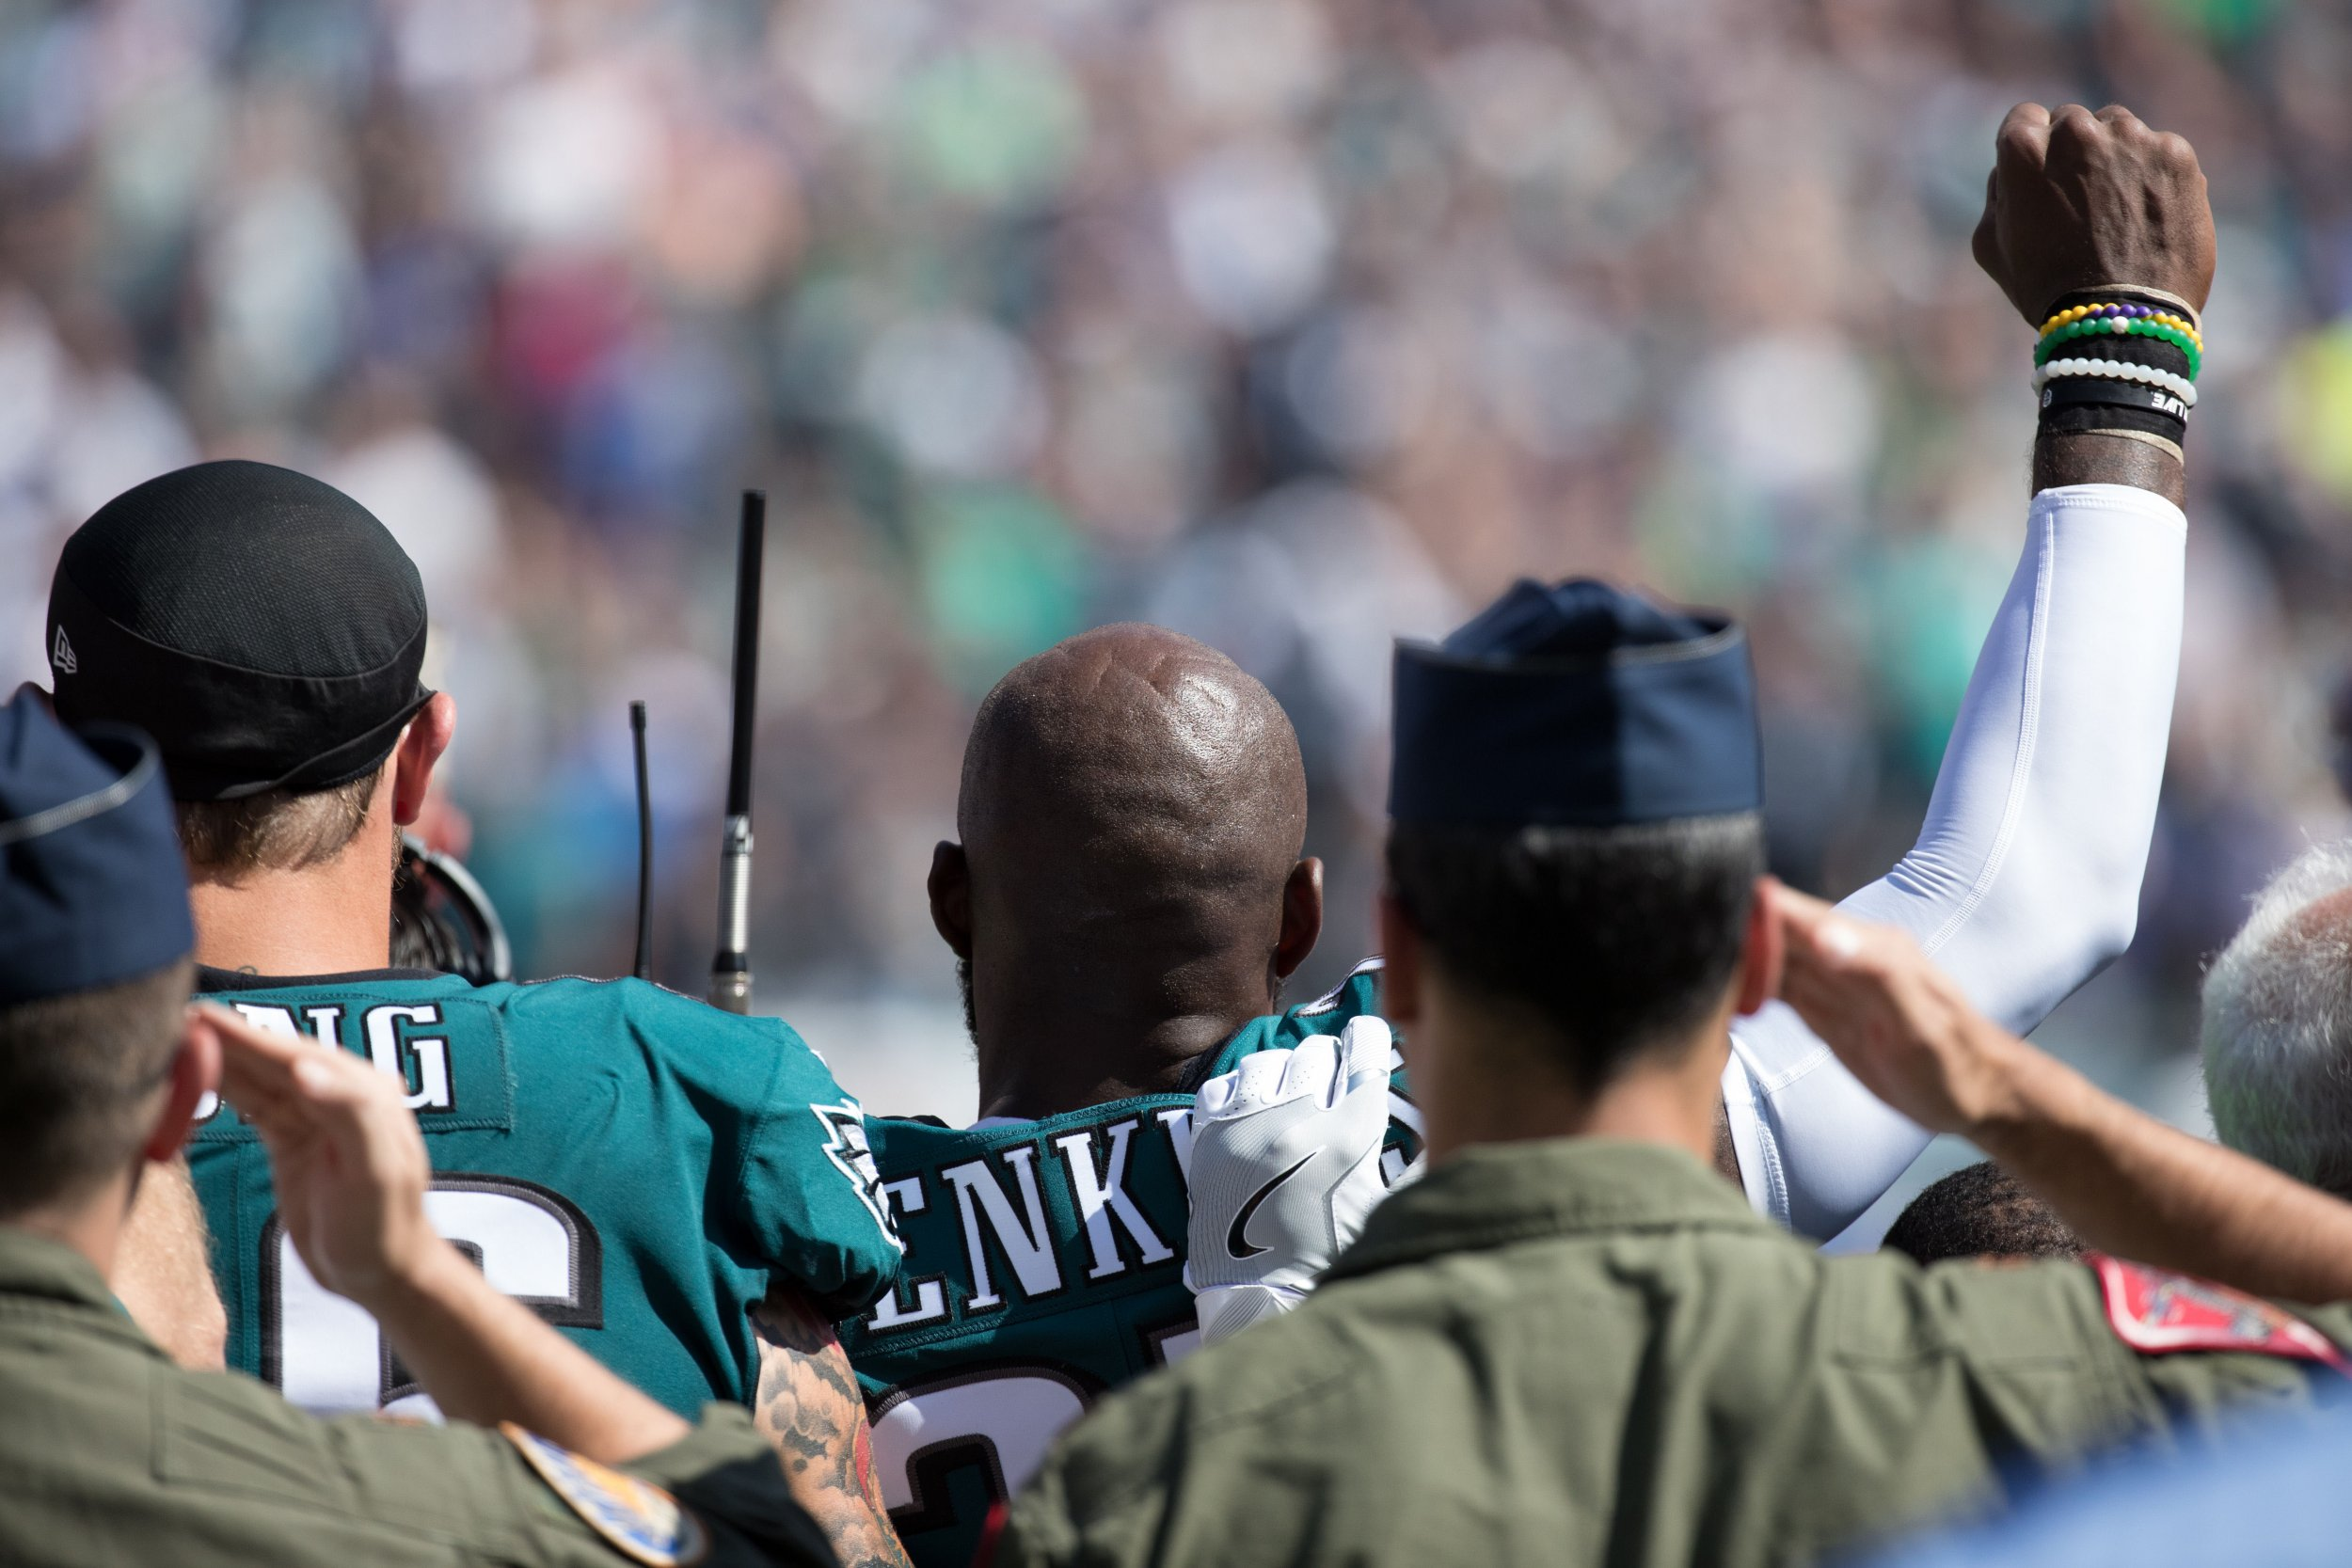 0925_Military_Veterans_NFL_Protest_Trump